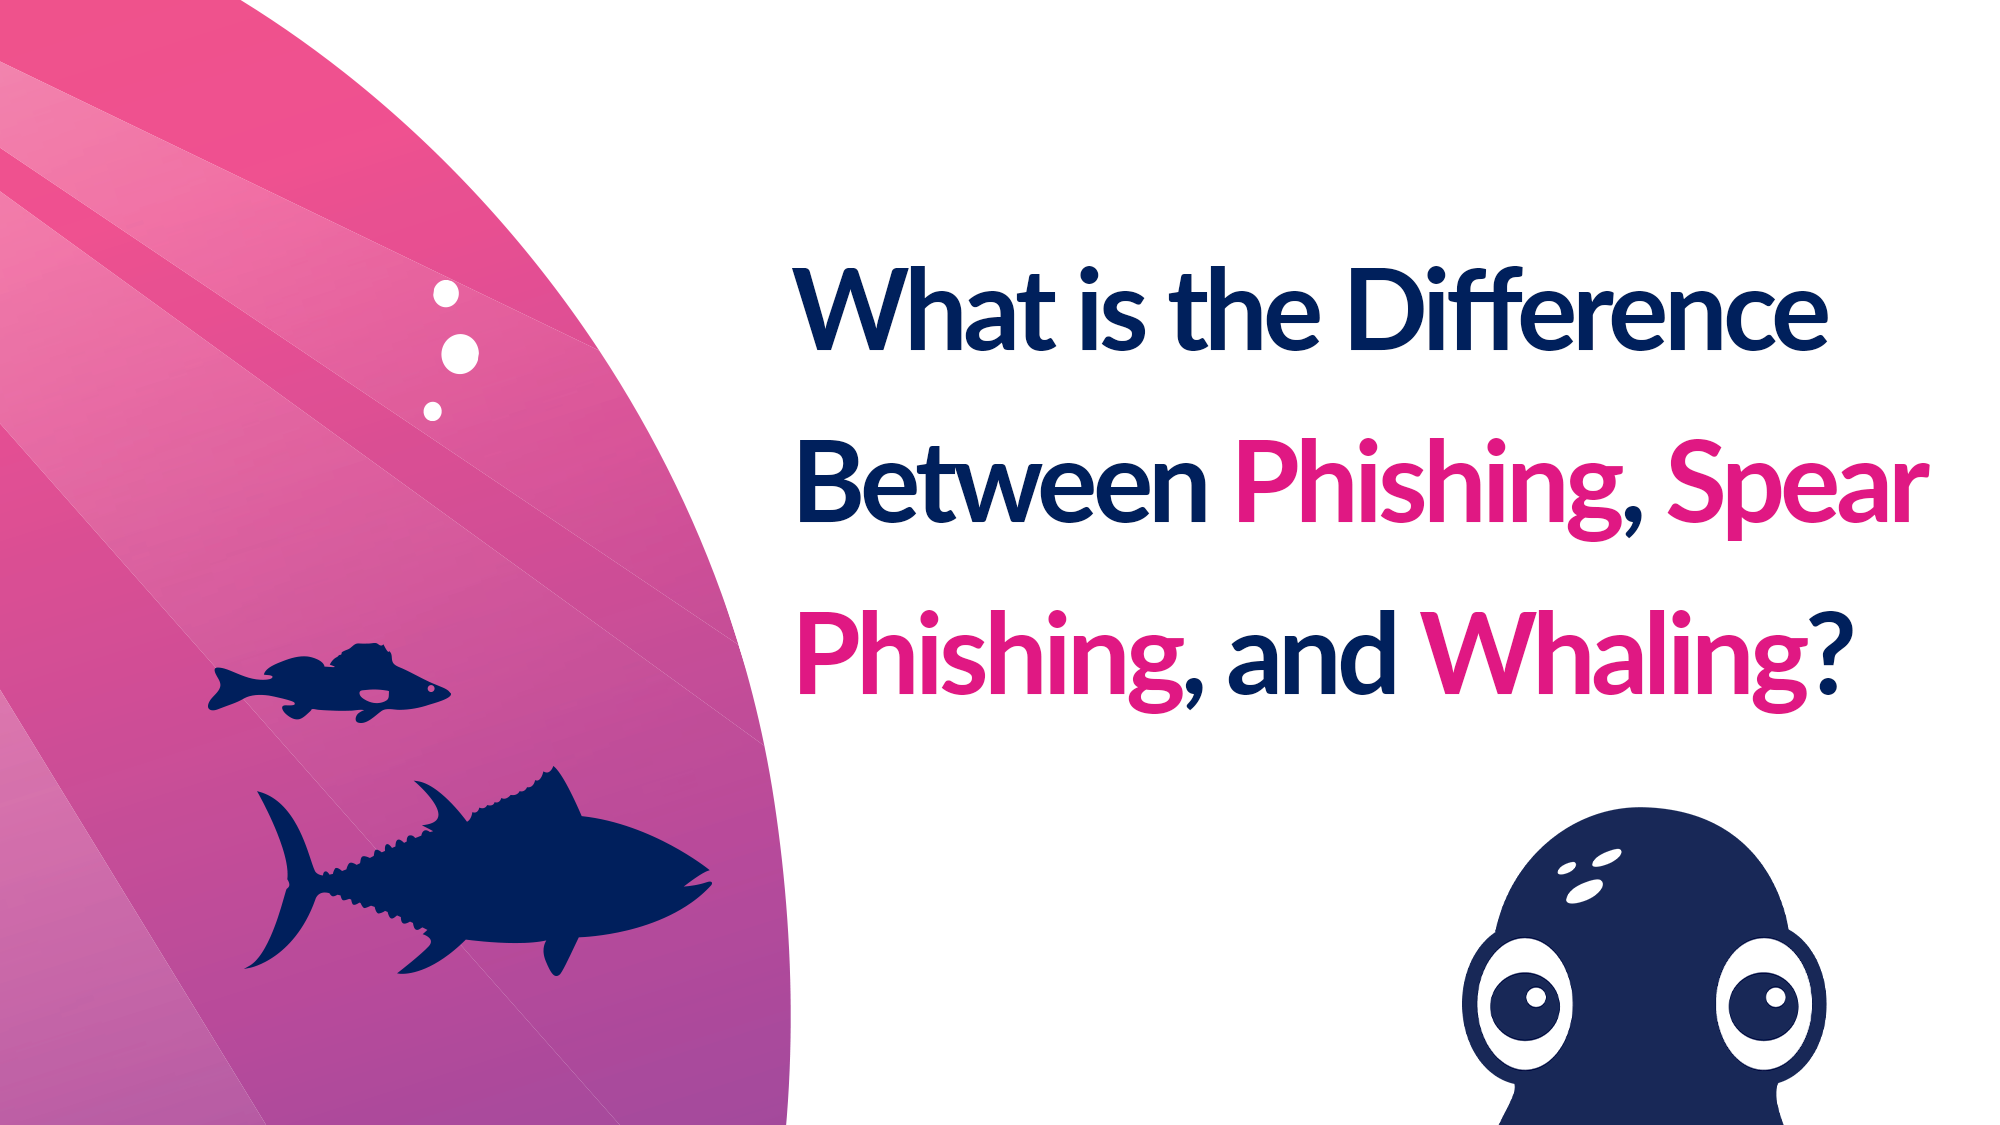 What is the difference between phishing spearphish whale